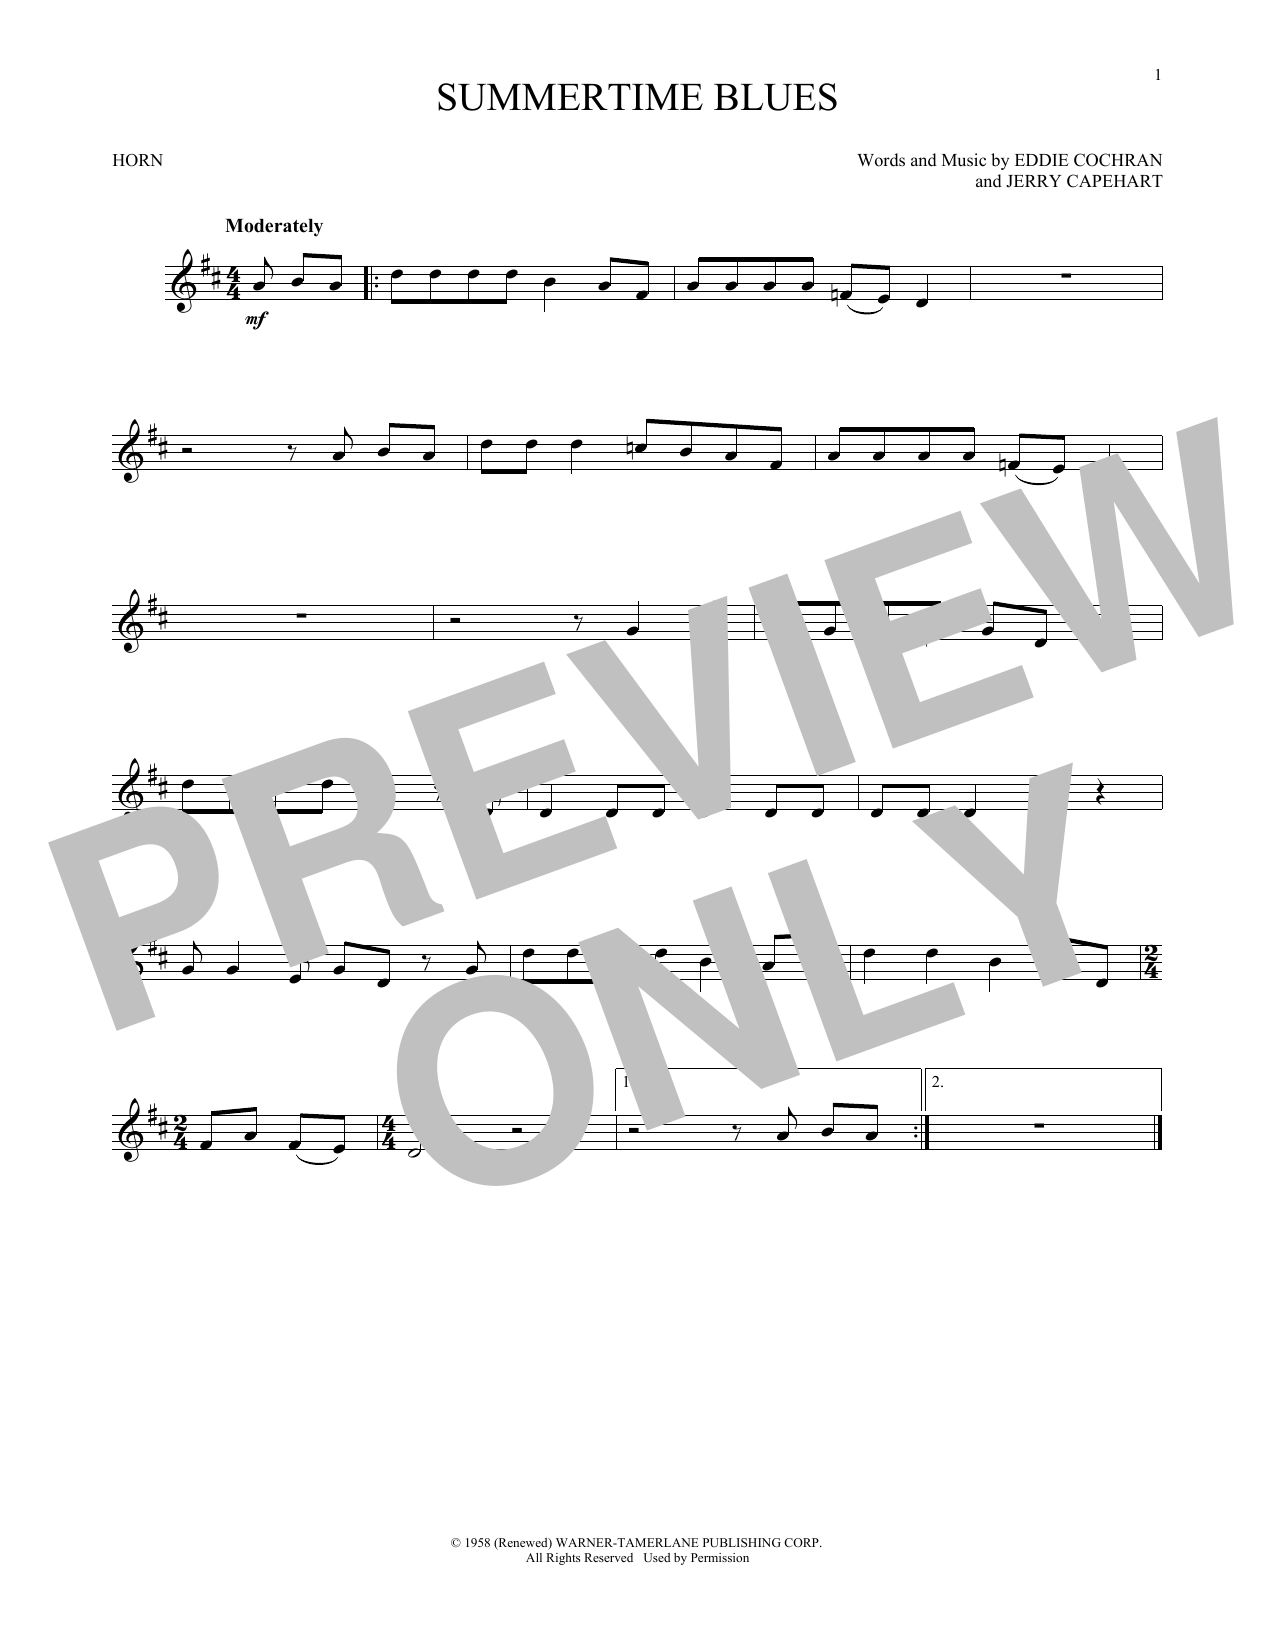 Summertime Blues (French Horn Solo)